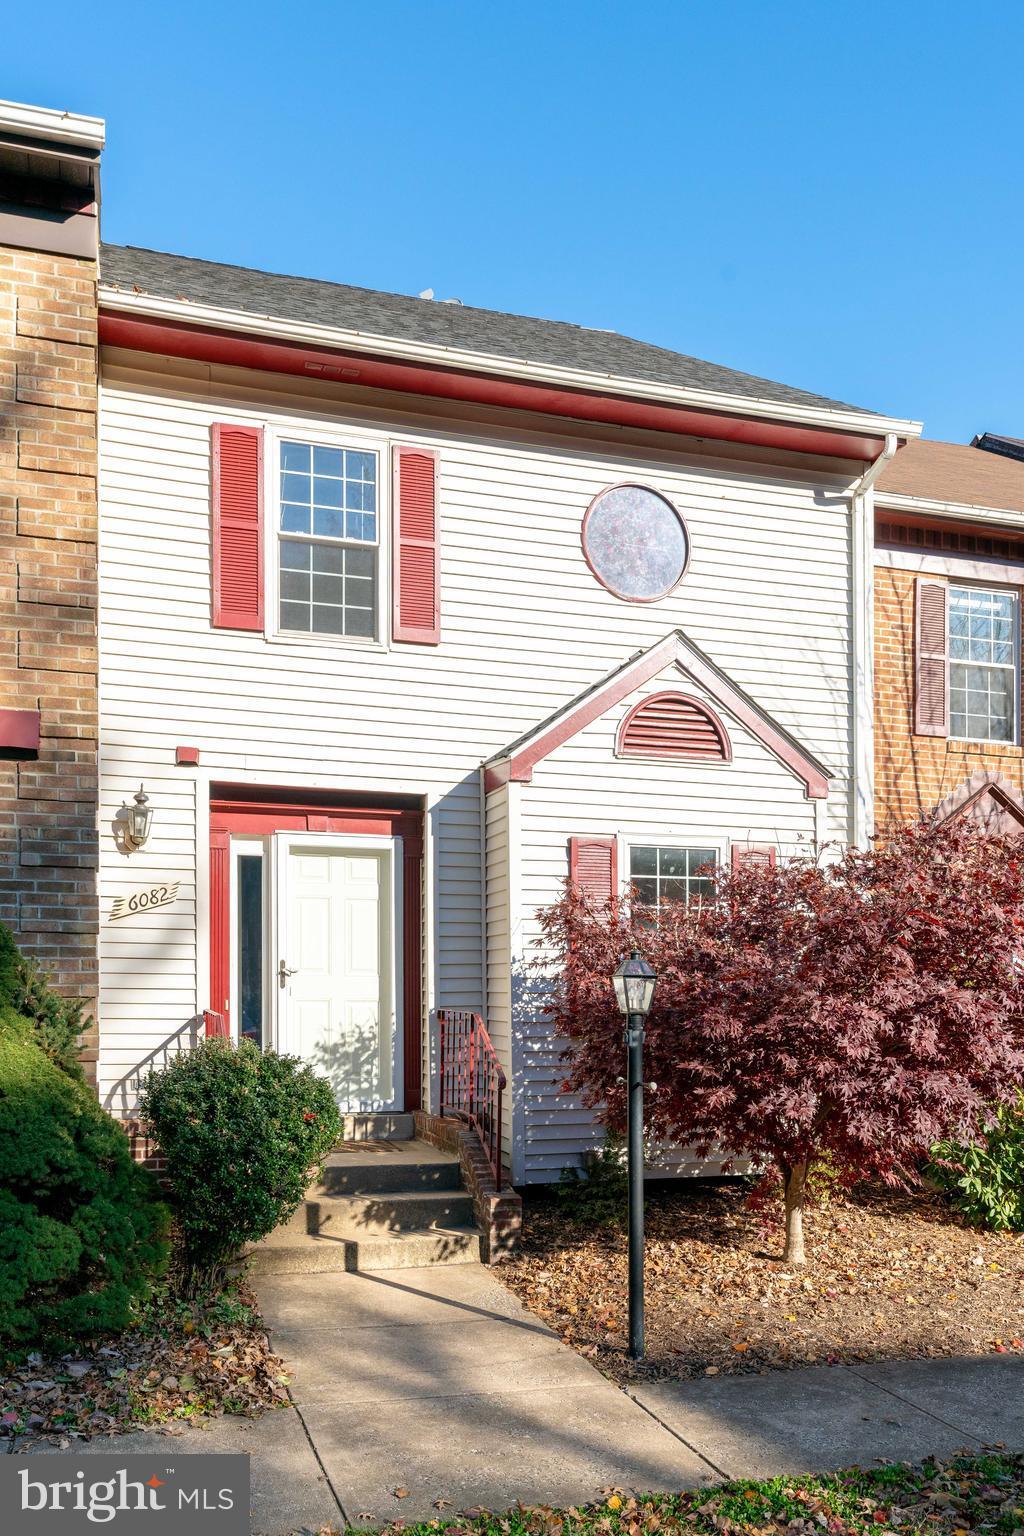 Home Sweet Home~ Beautiful hardwood flooring on main level.  Brand new stainless steel appliances.  Recessed lighting.  Fresh paint. New carpet on lower level.  Convenient to major highways and shopping centers.  Commuters dream.